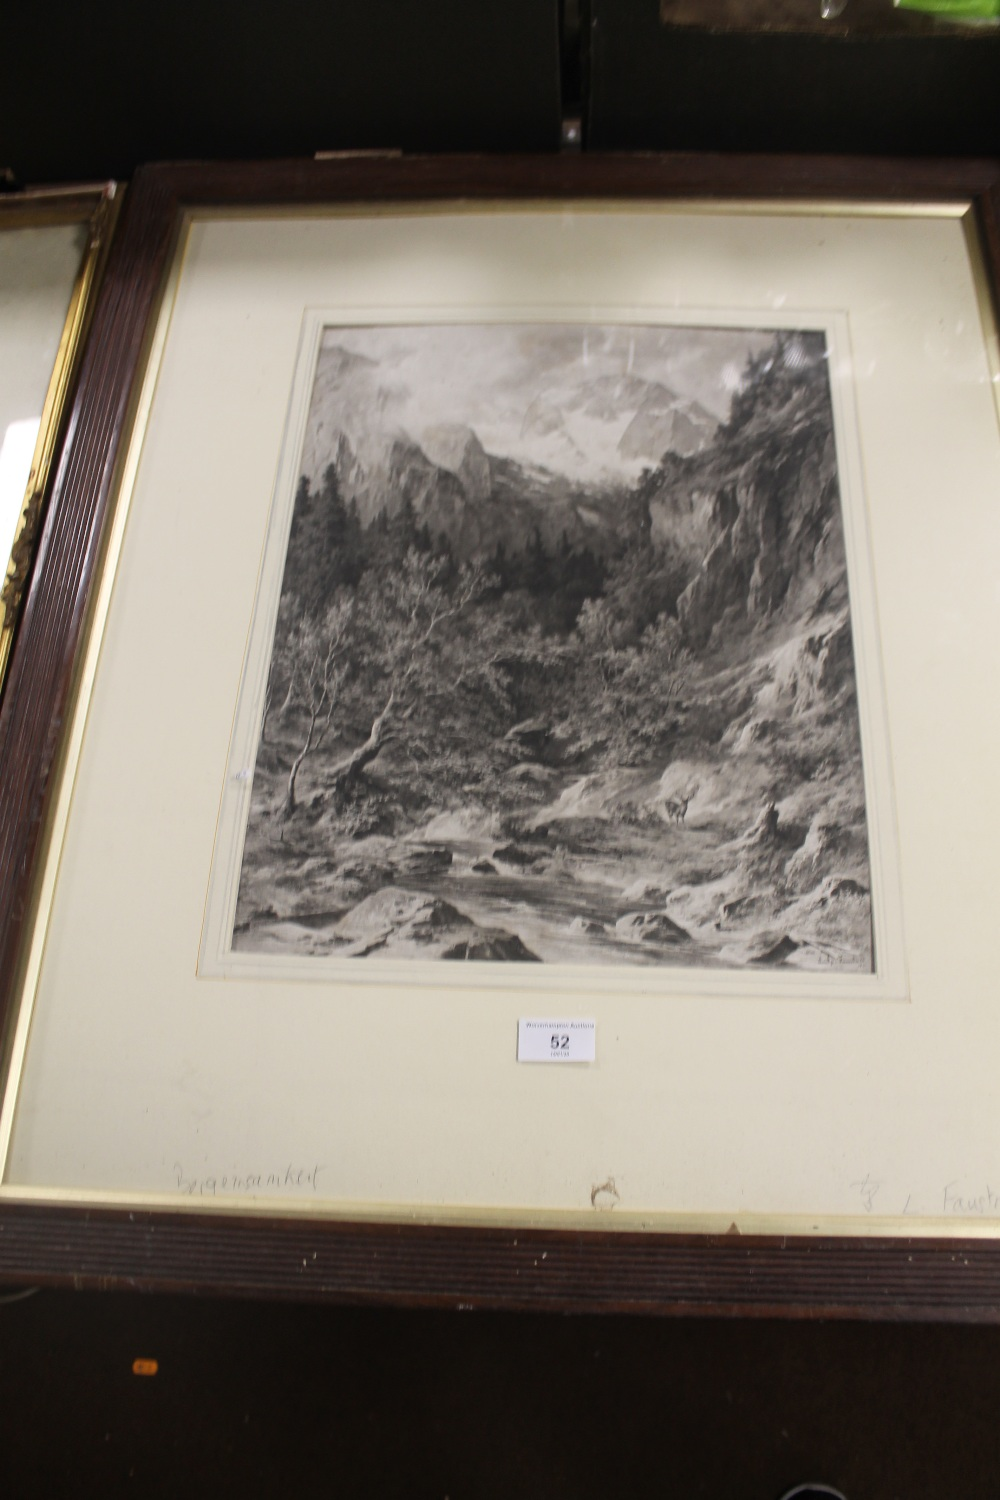 Lot 52 - A FRAMED PRINT DEPICTING A MOUNTAINSIDE SCENE WITH DEER IN FOREGROUND SIGNED L. FAUSTNER